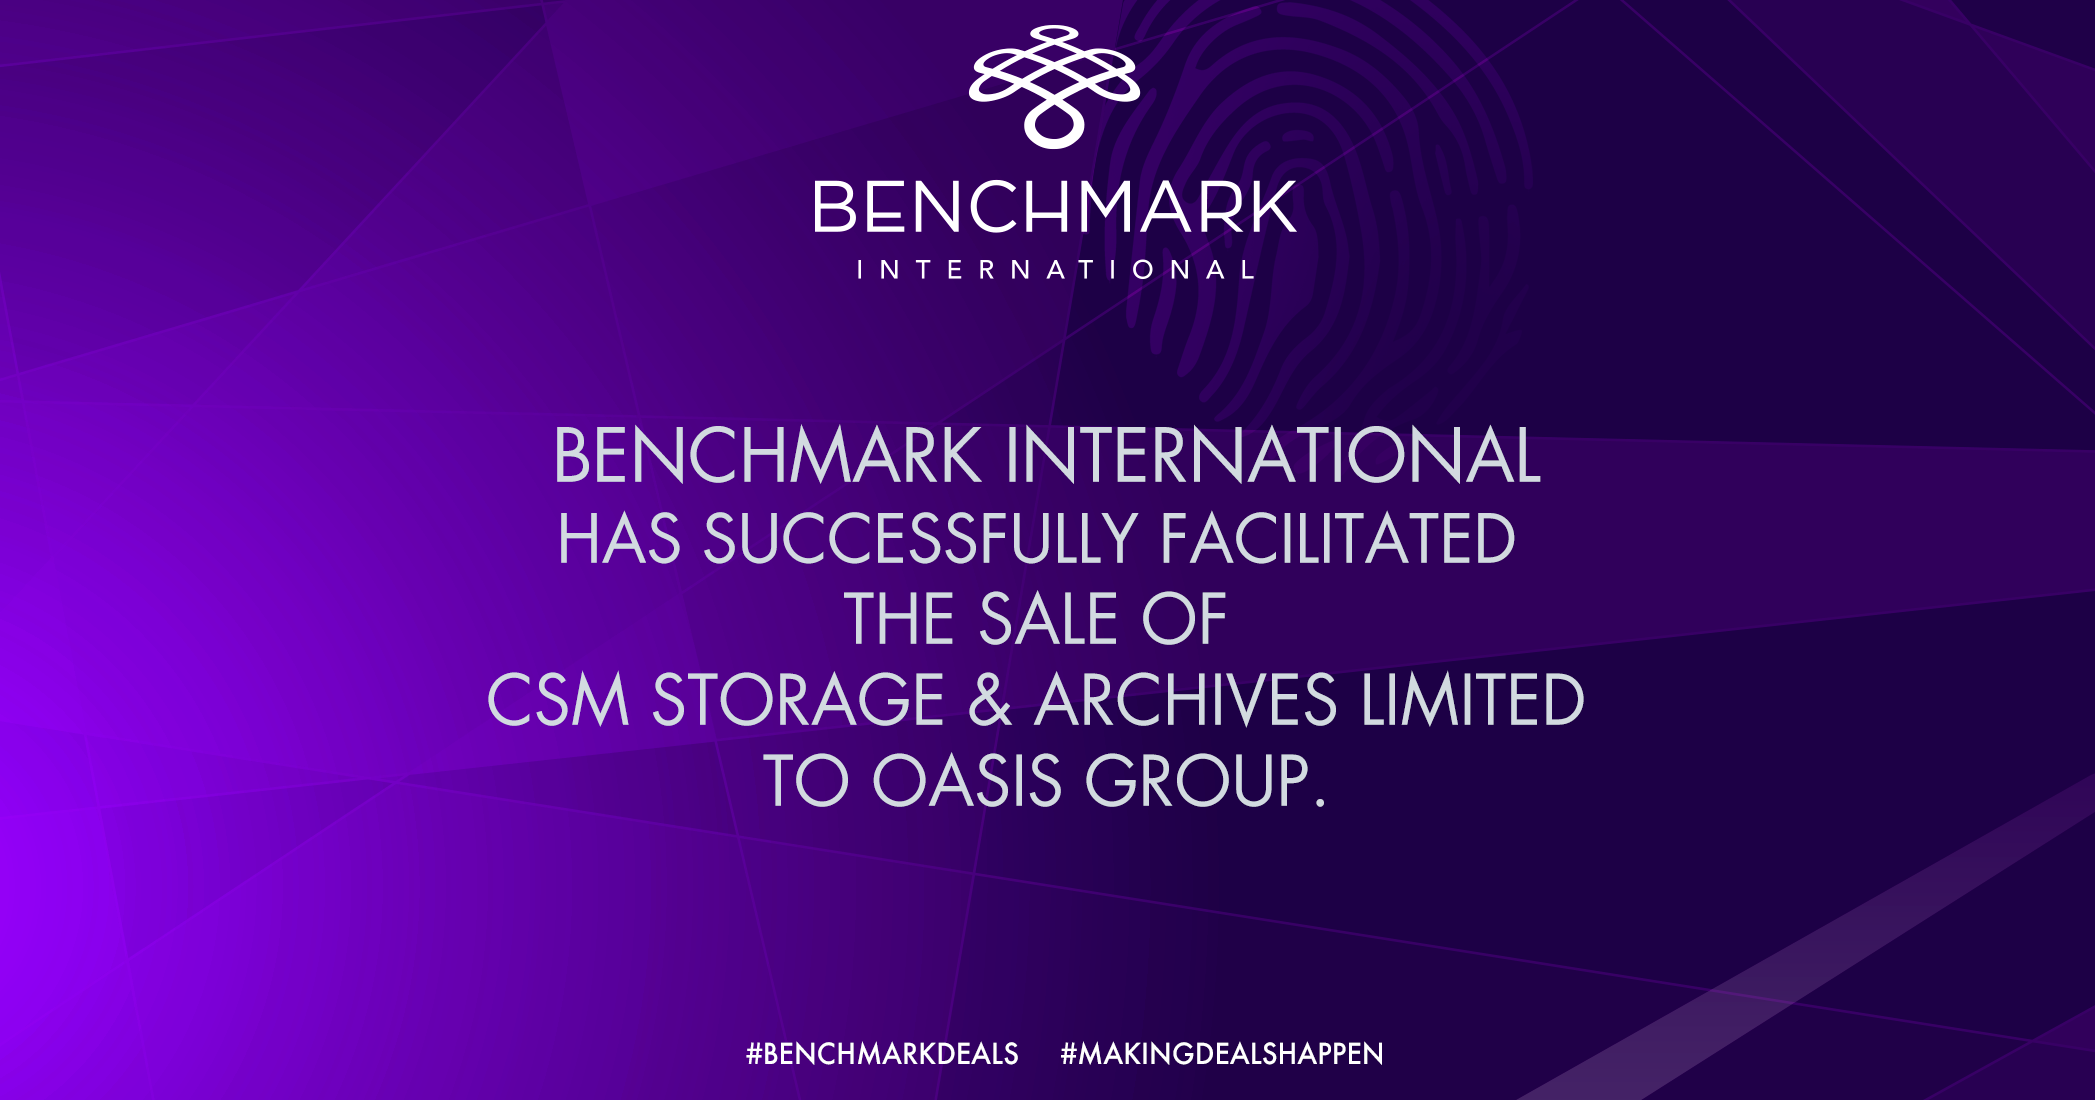 Benchmark International Has Successfully Facilitated the Sale of CSM